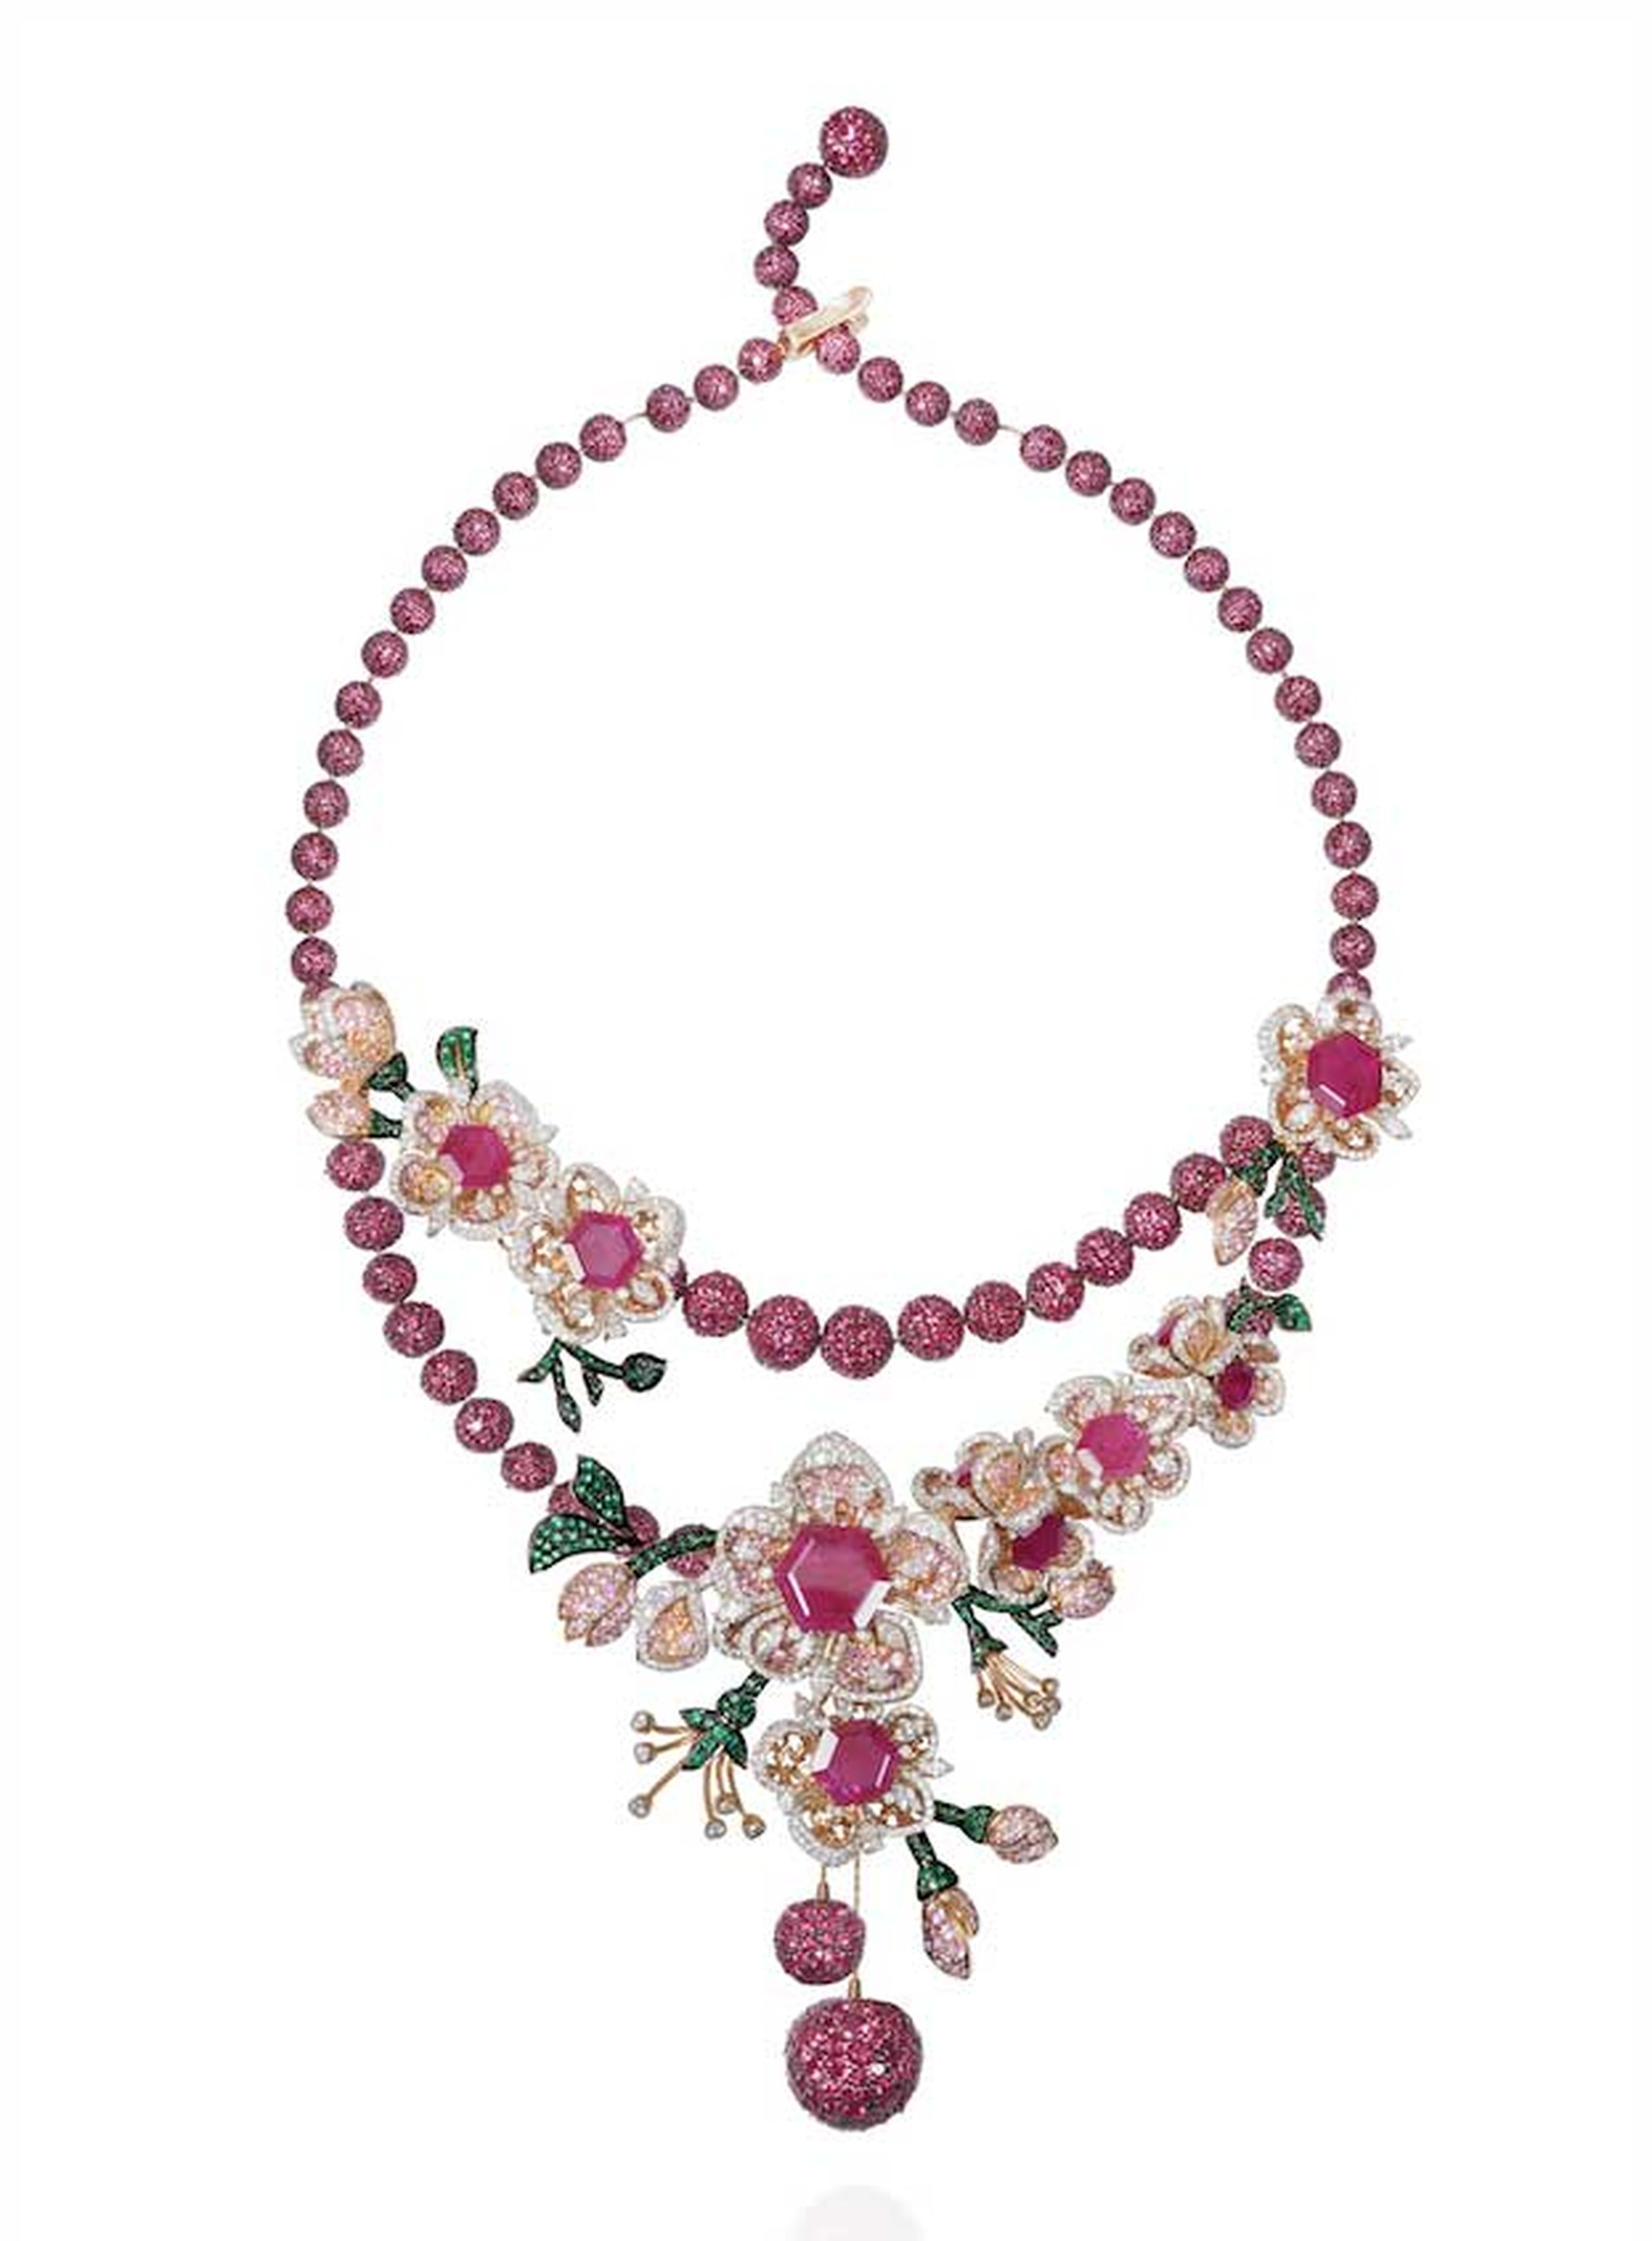 Lot 6, a Gemfields Mozambican ruby, Gemfields Zambian emerald, diamond, pink sapphire and orange sapphire necklace by Mirari, to be auctioned as part of a suite (estimate: INR 3,600,000 - 4,350,000; $60,000 - 73,000)